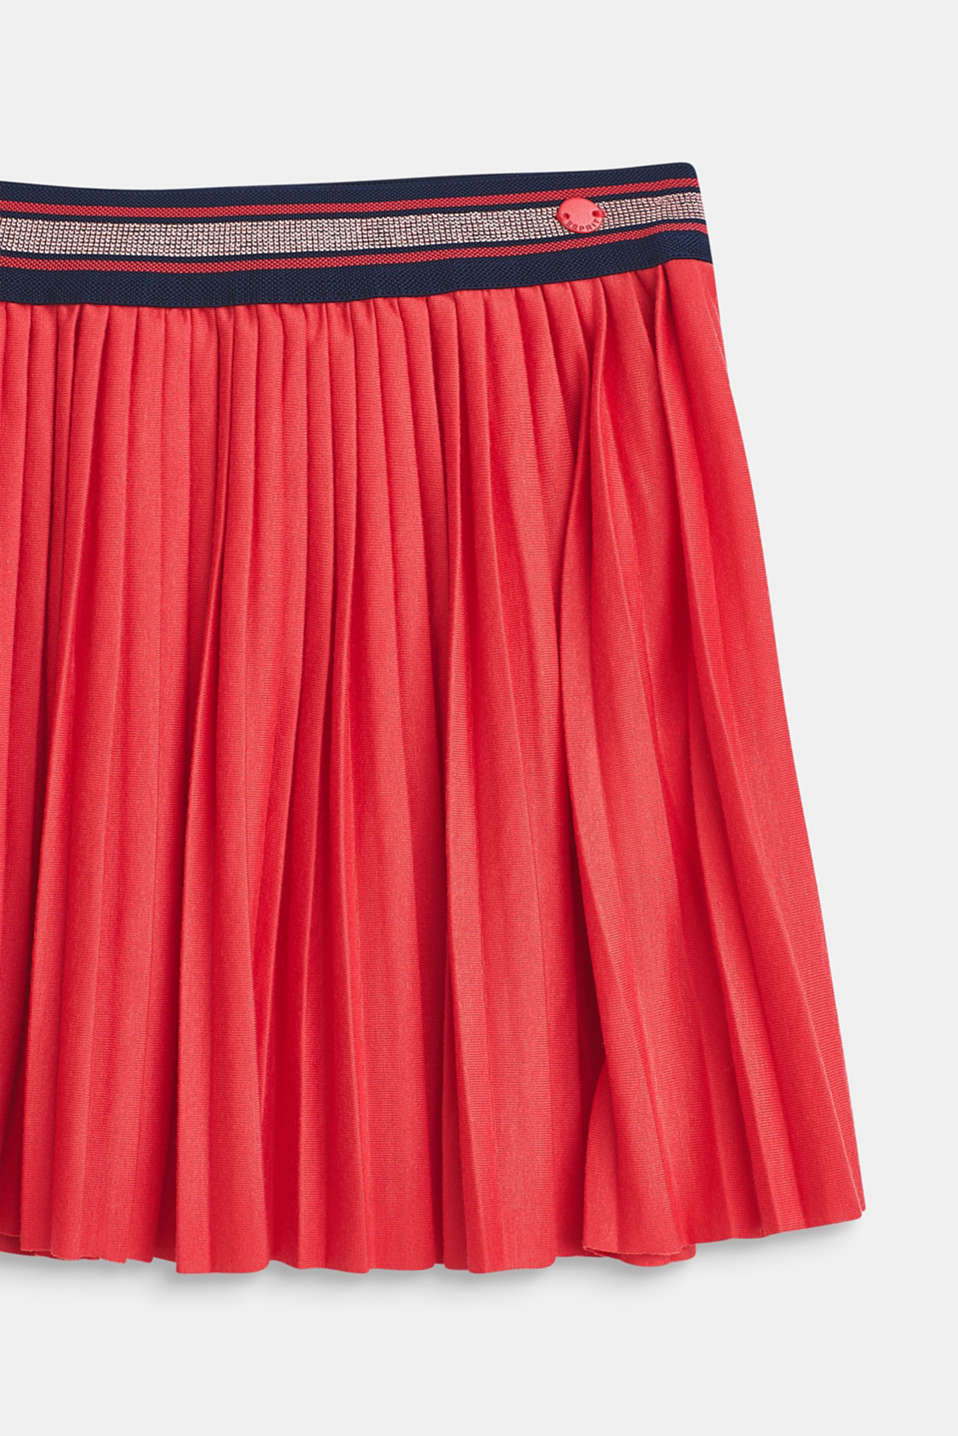 Pleated skirt made of jersey with an elasticated waistband, STRAWBERRY, detail image number 3